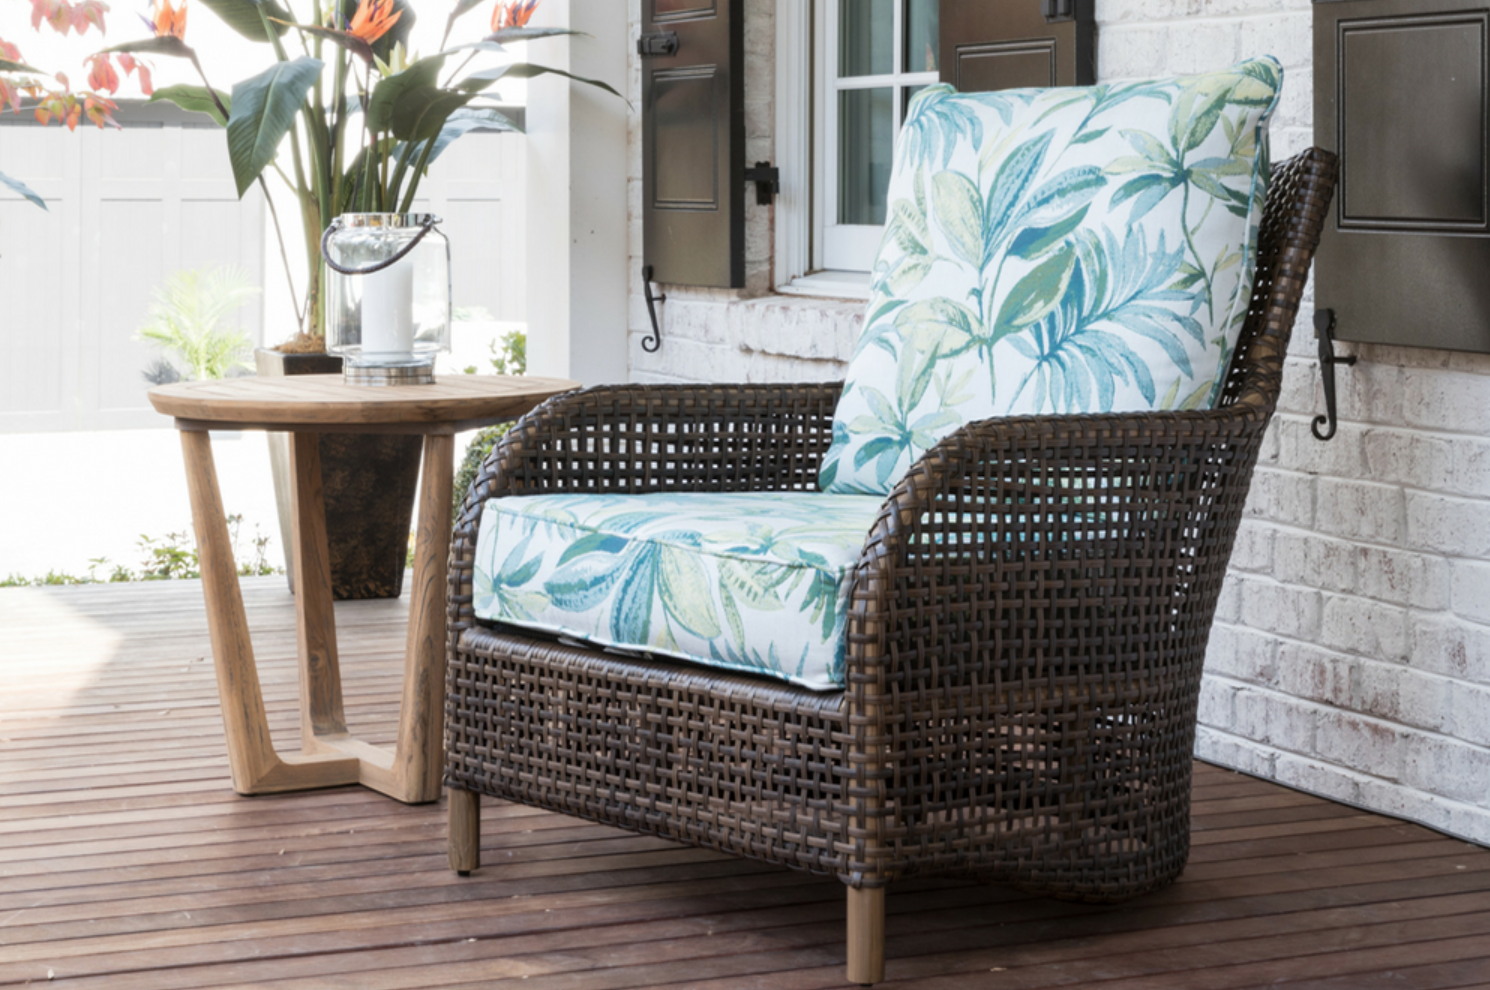 Lloyd Flanders features quality woven furniture--some of the best, classic outdoor furniture you'll find! What we can expect to see: Luxurious outdoor furnishings with the luxe shapes of formal interior living room furniture